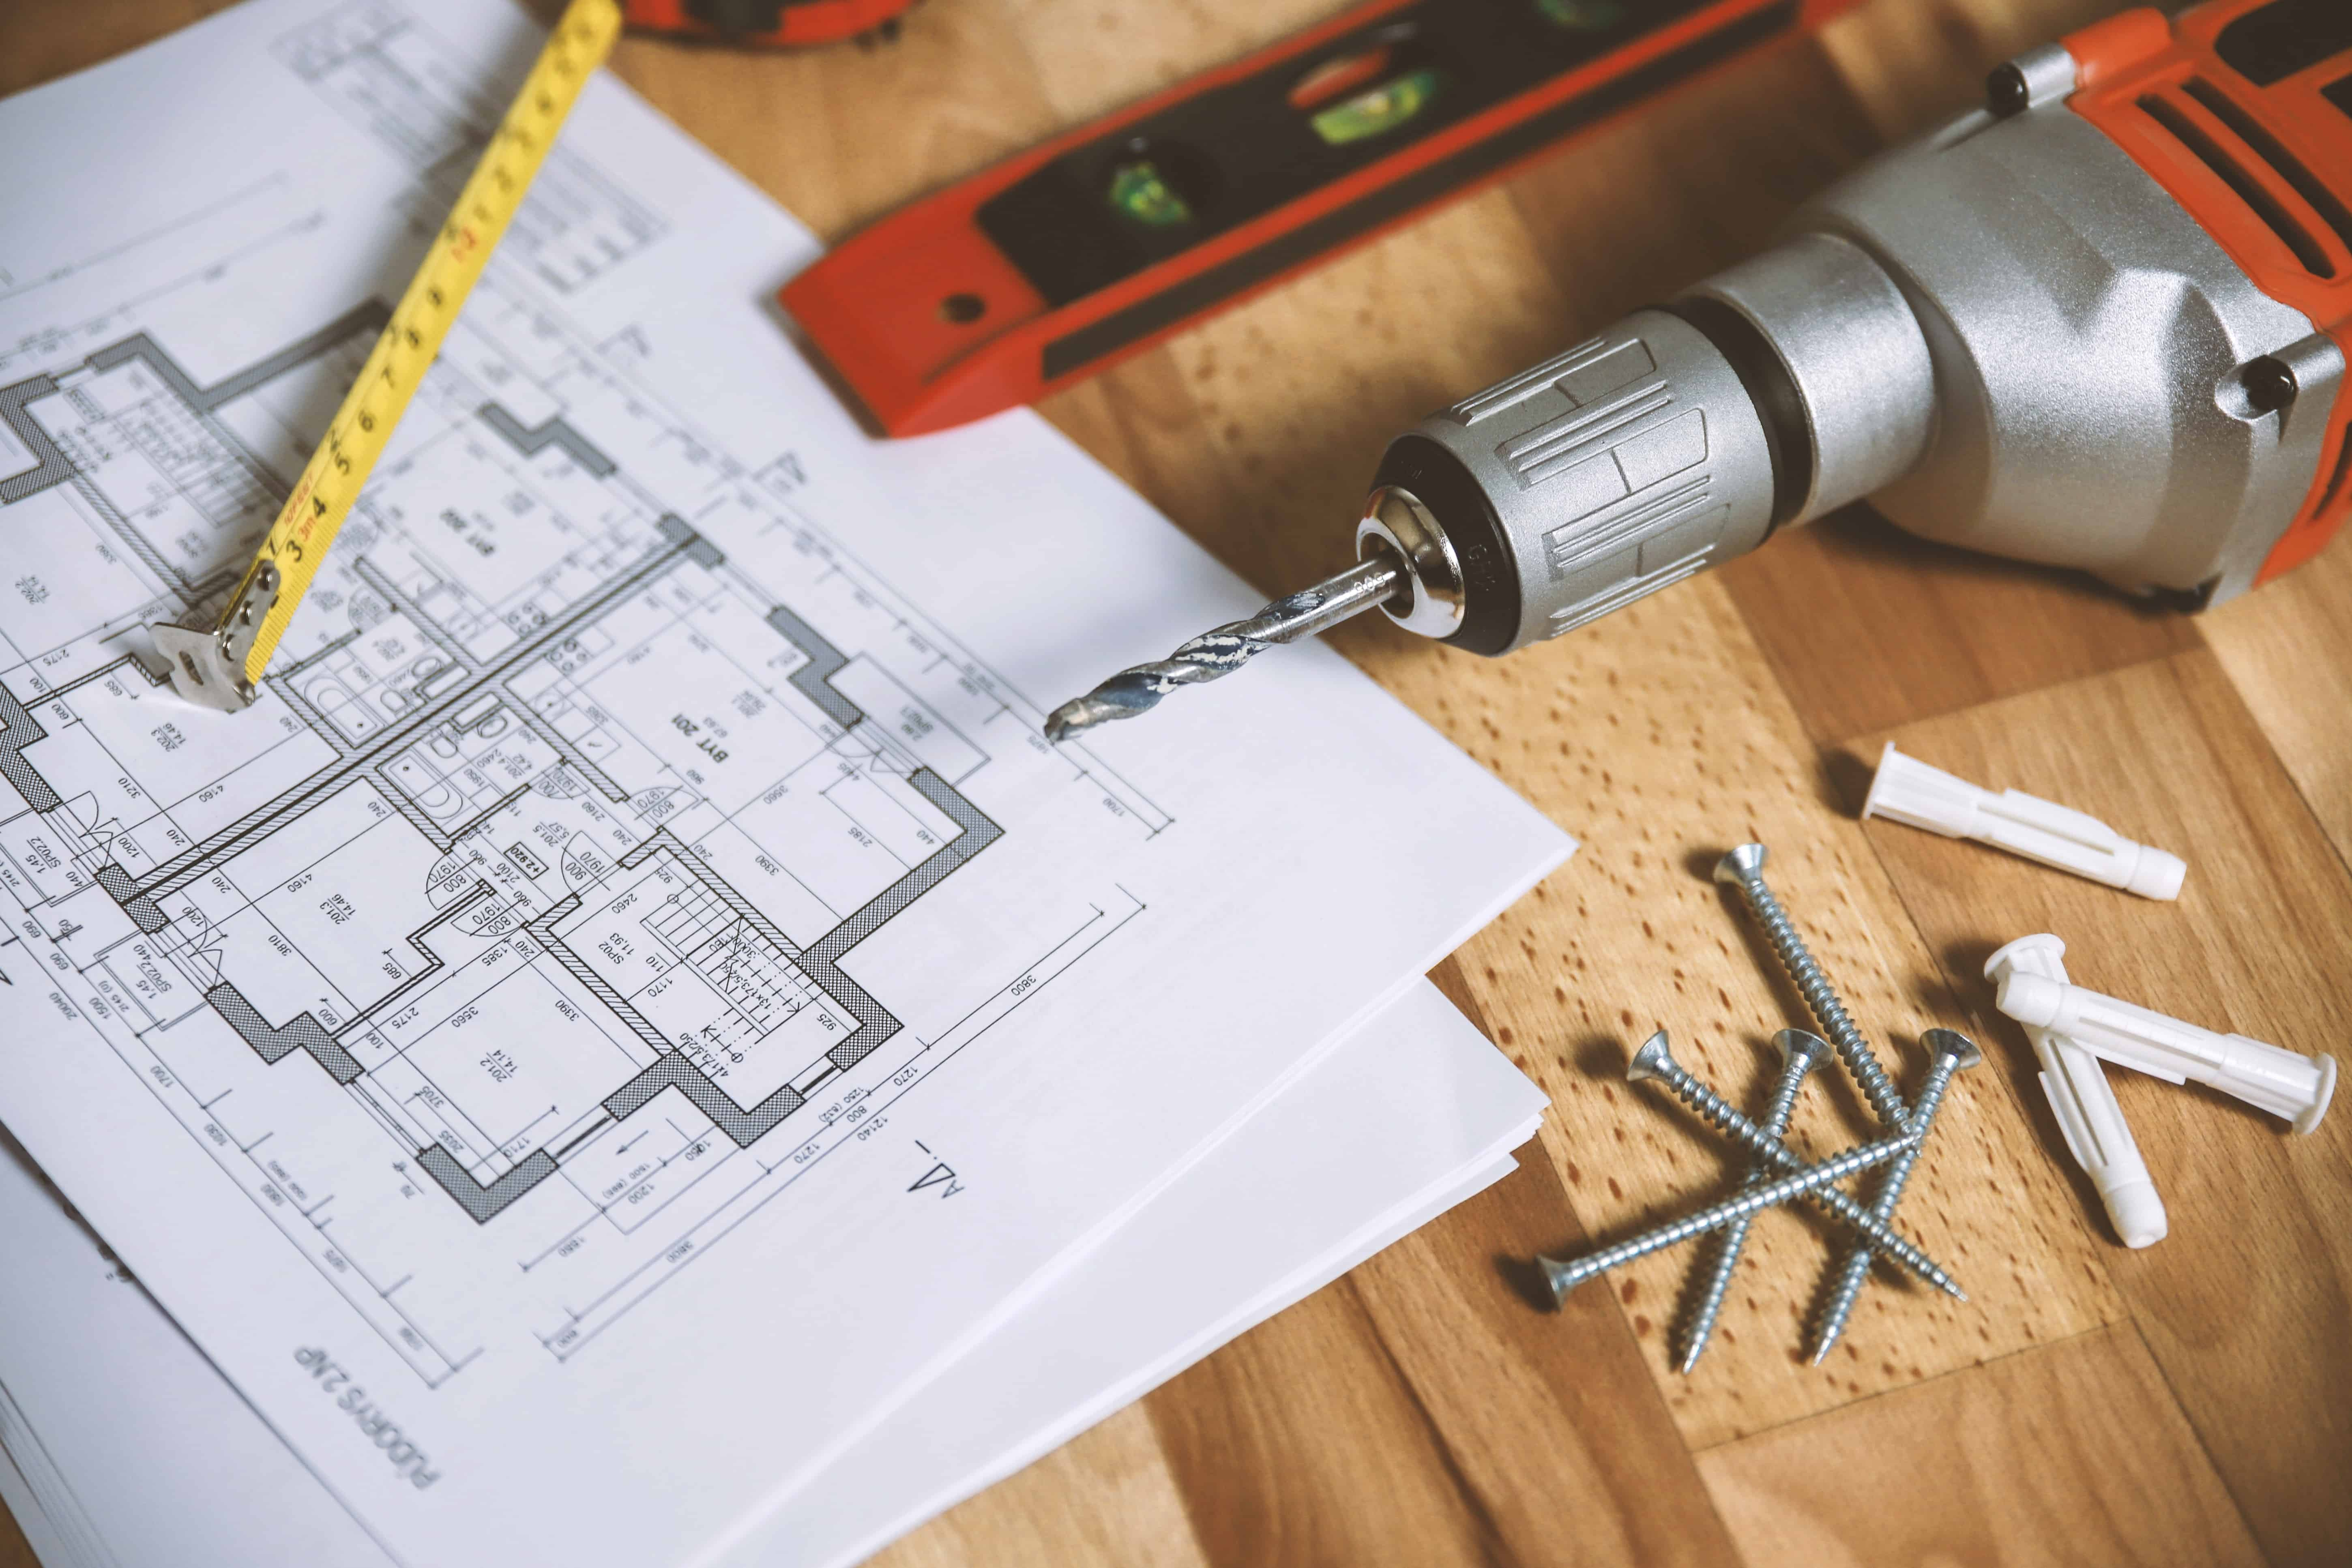 architectural Floor plan on table with drill and nails